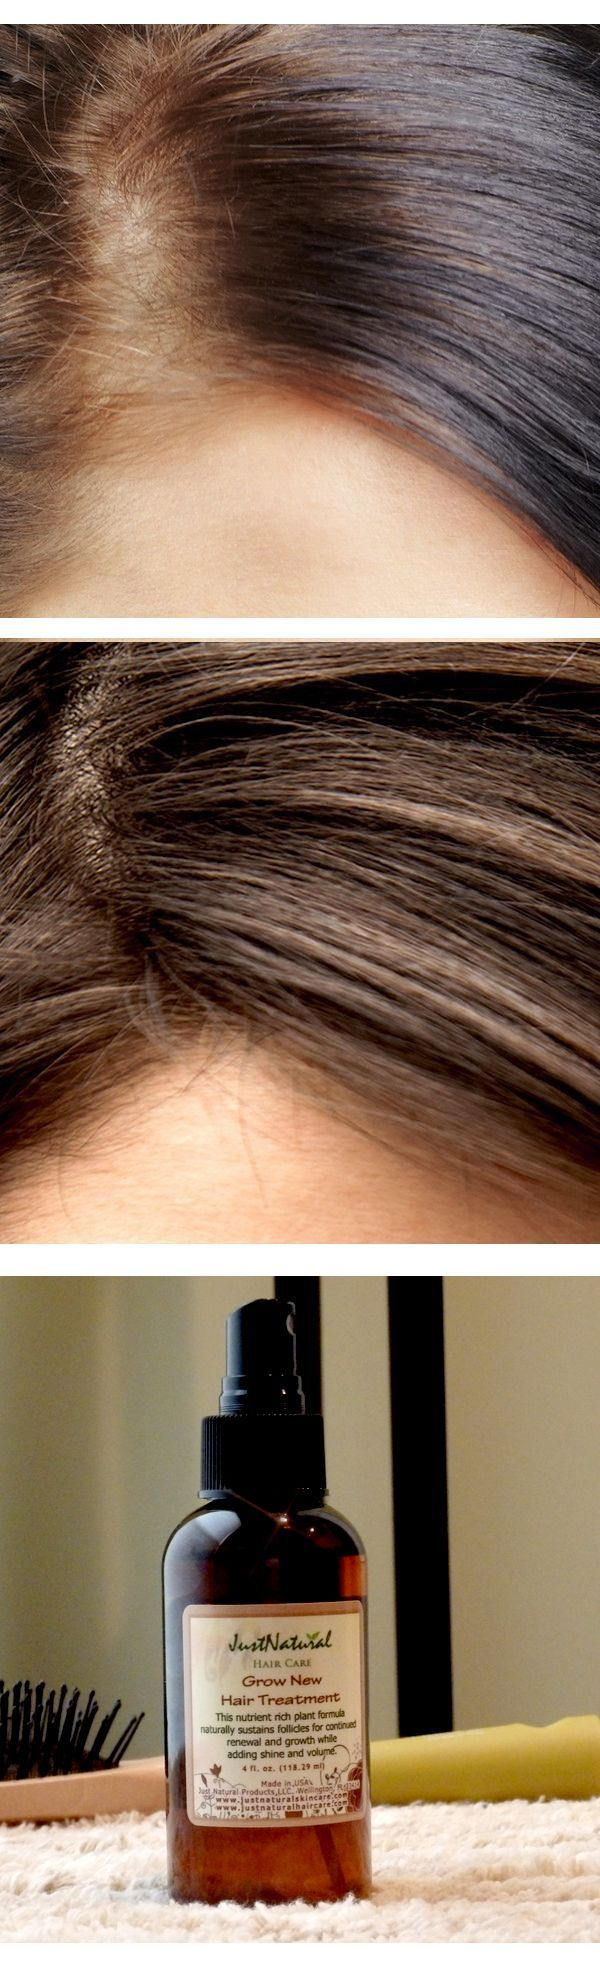 This stuff help grow my hair back from stress related hair loss. It is very light and smells good. I massage it into my scalp after washing it. It makes my hair silky smooth. I didn't notice much difference at first but after 4 months, there is significant amount of hair with length at the hairline area where I'd lost a lot of hair. I use a small amount a couple of times a week and have had good results.